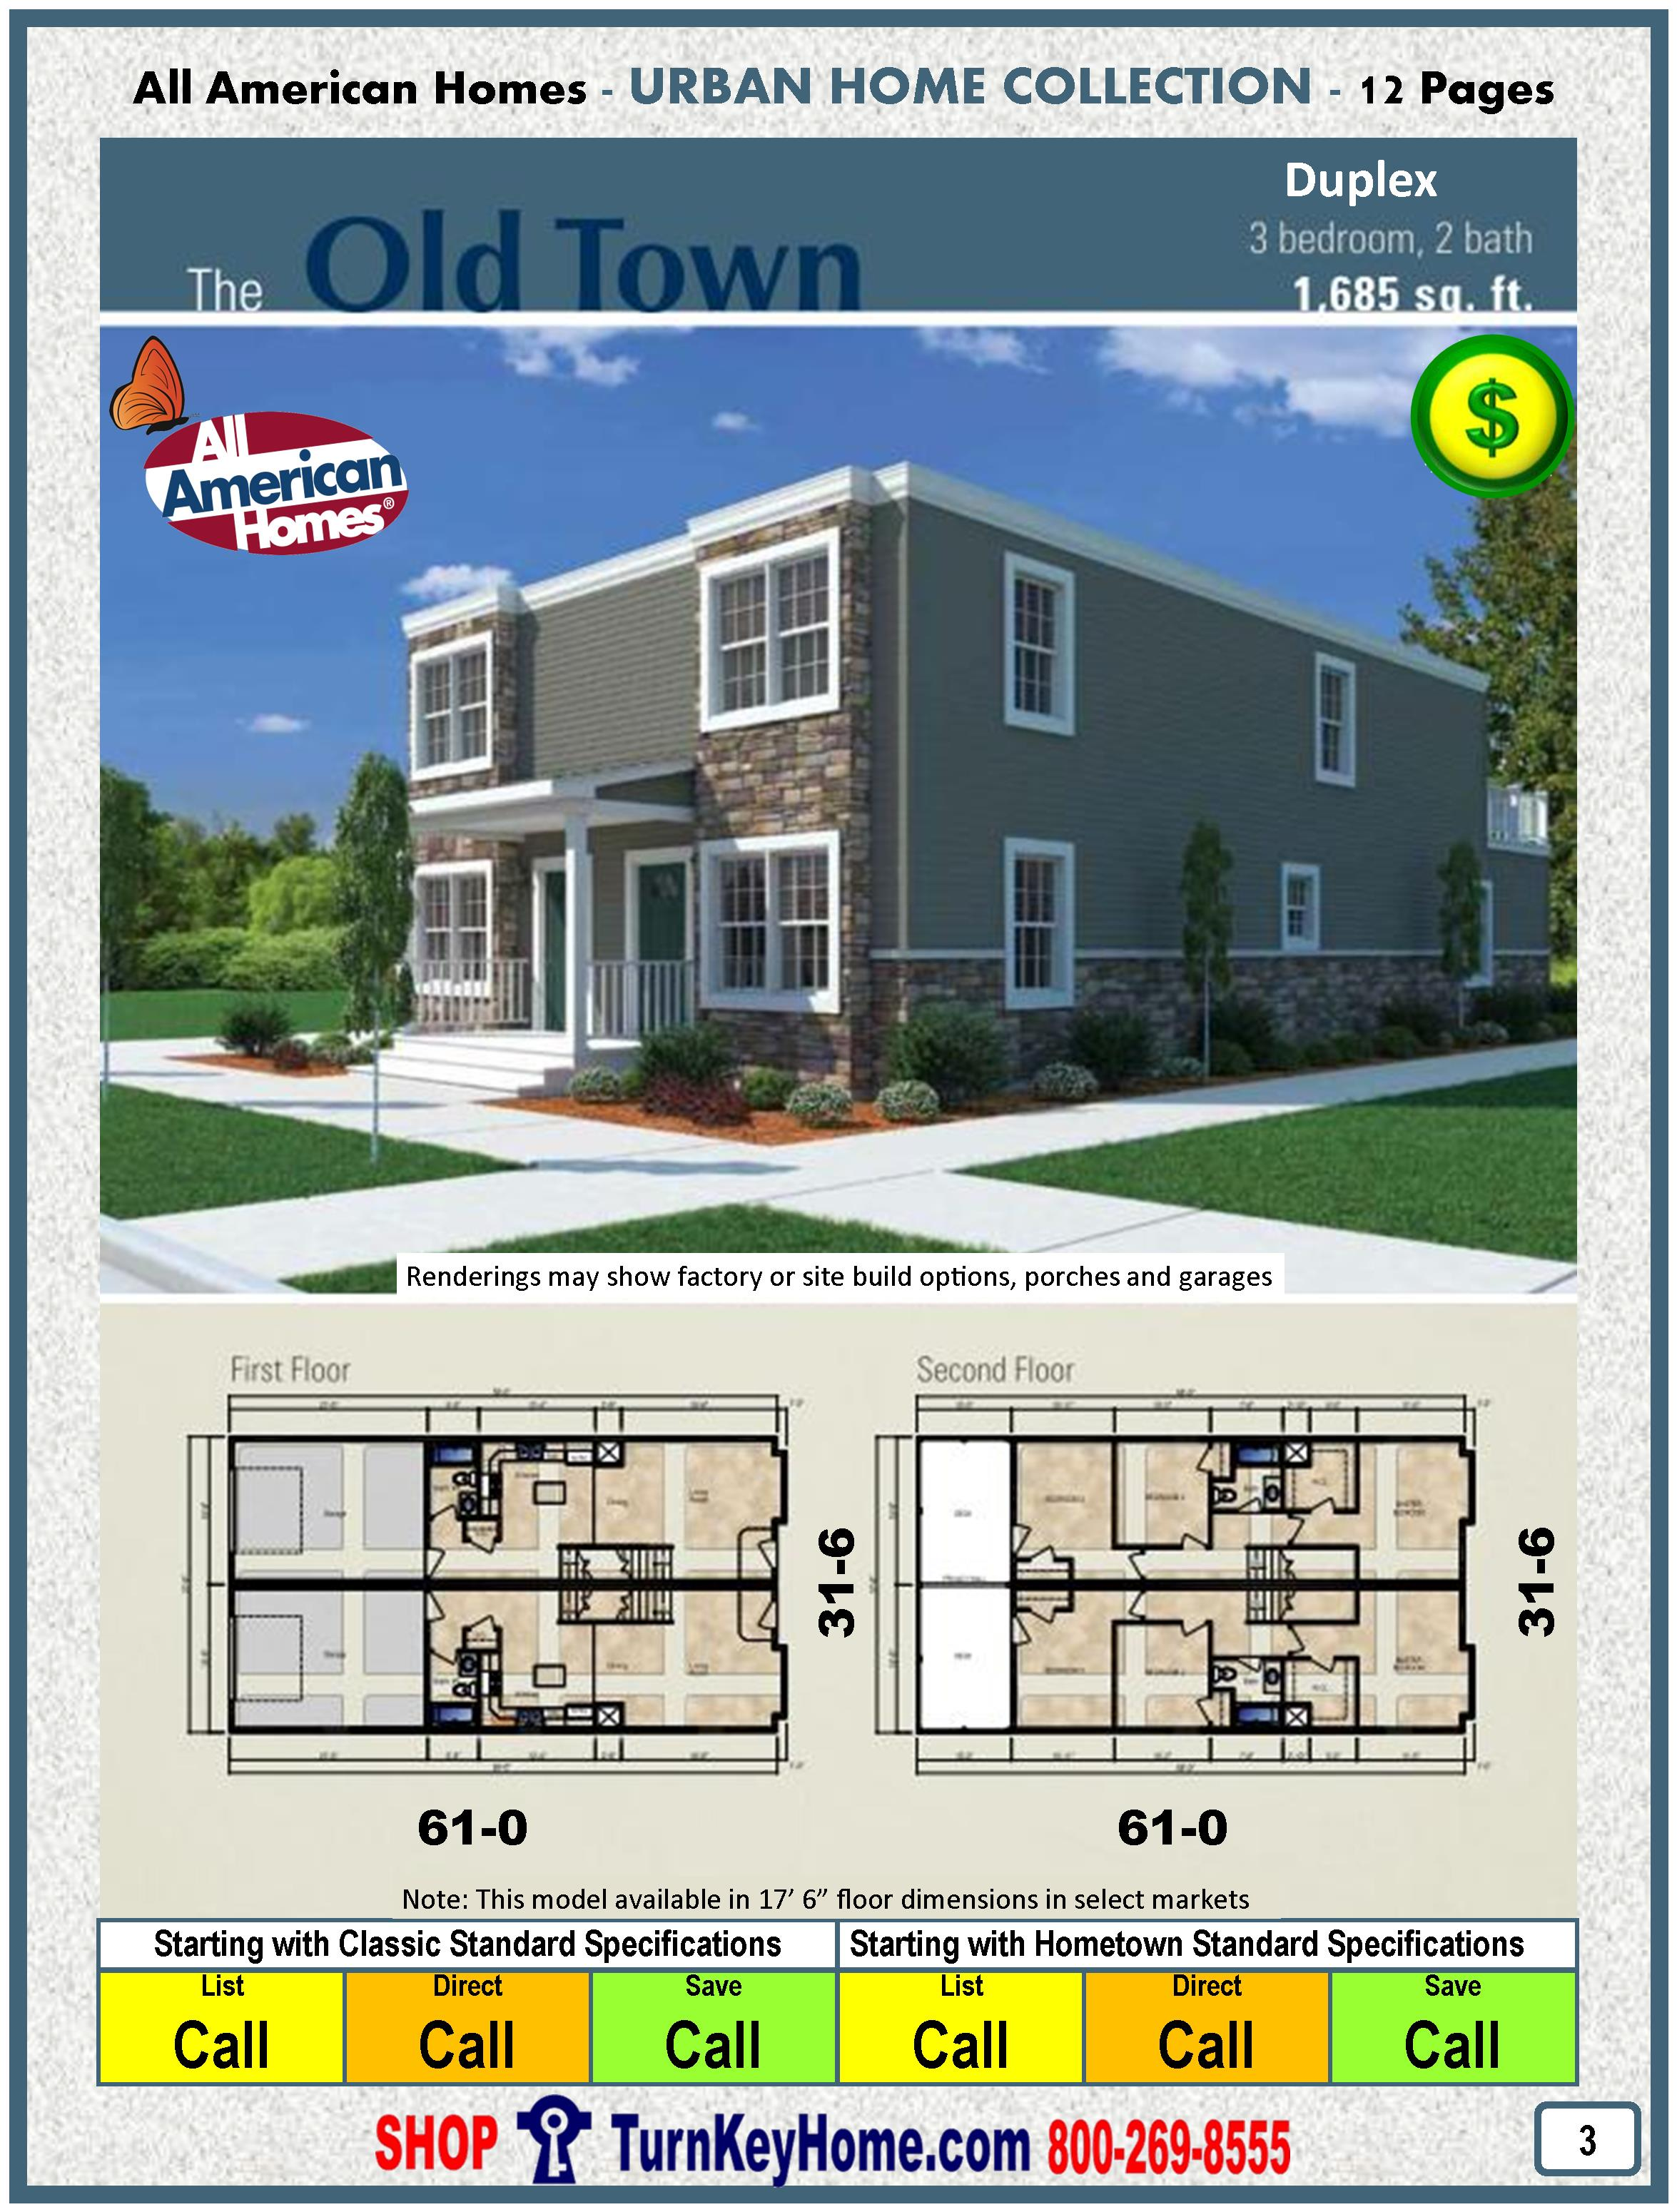 Old Town Duplex All American Modular Home Urban Collection